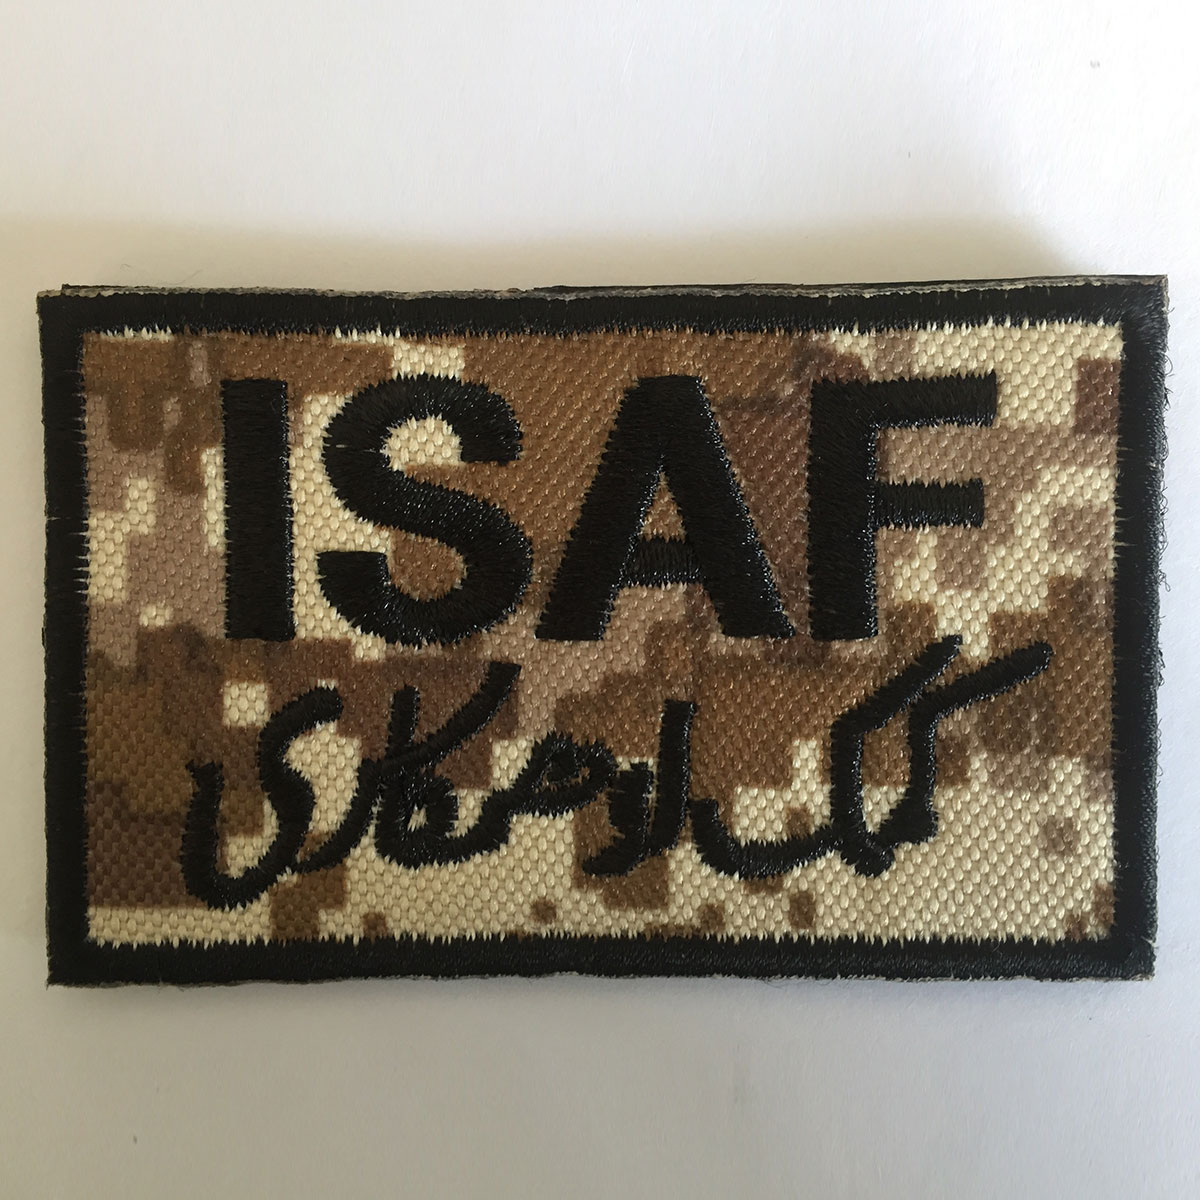 LIKE A BOSS TACTICAL USA ARMY MORALE USA ISAF MILITARY BADGE SWAT HOOK PATCH